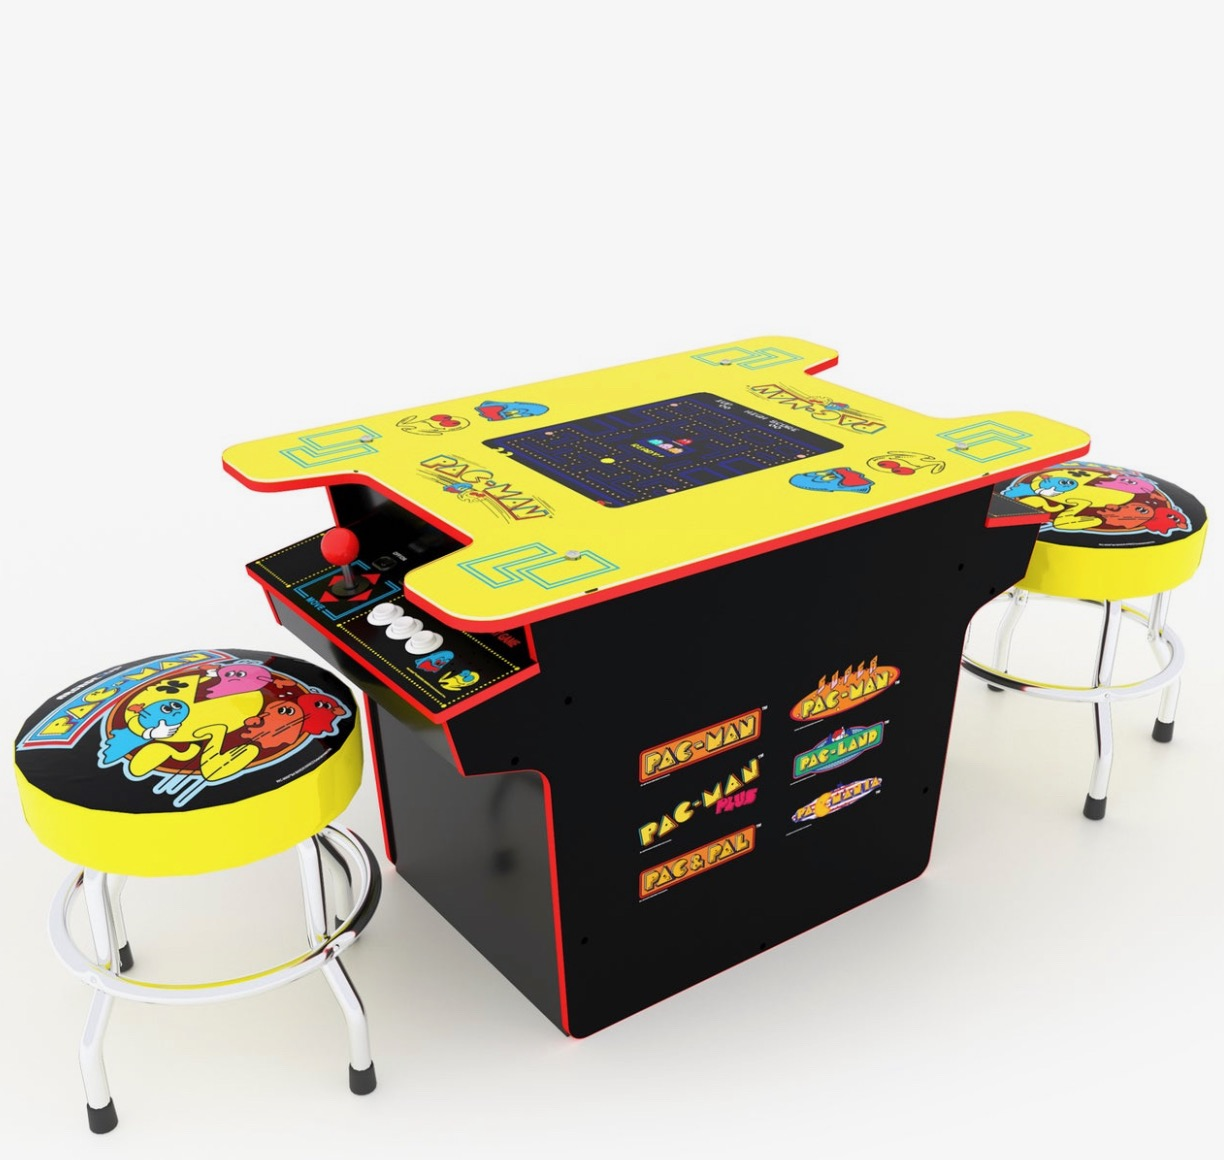 Pac-Man Arcade Machine Rentals - Bar Mit